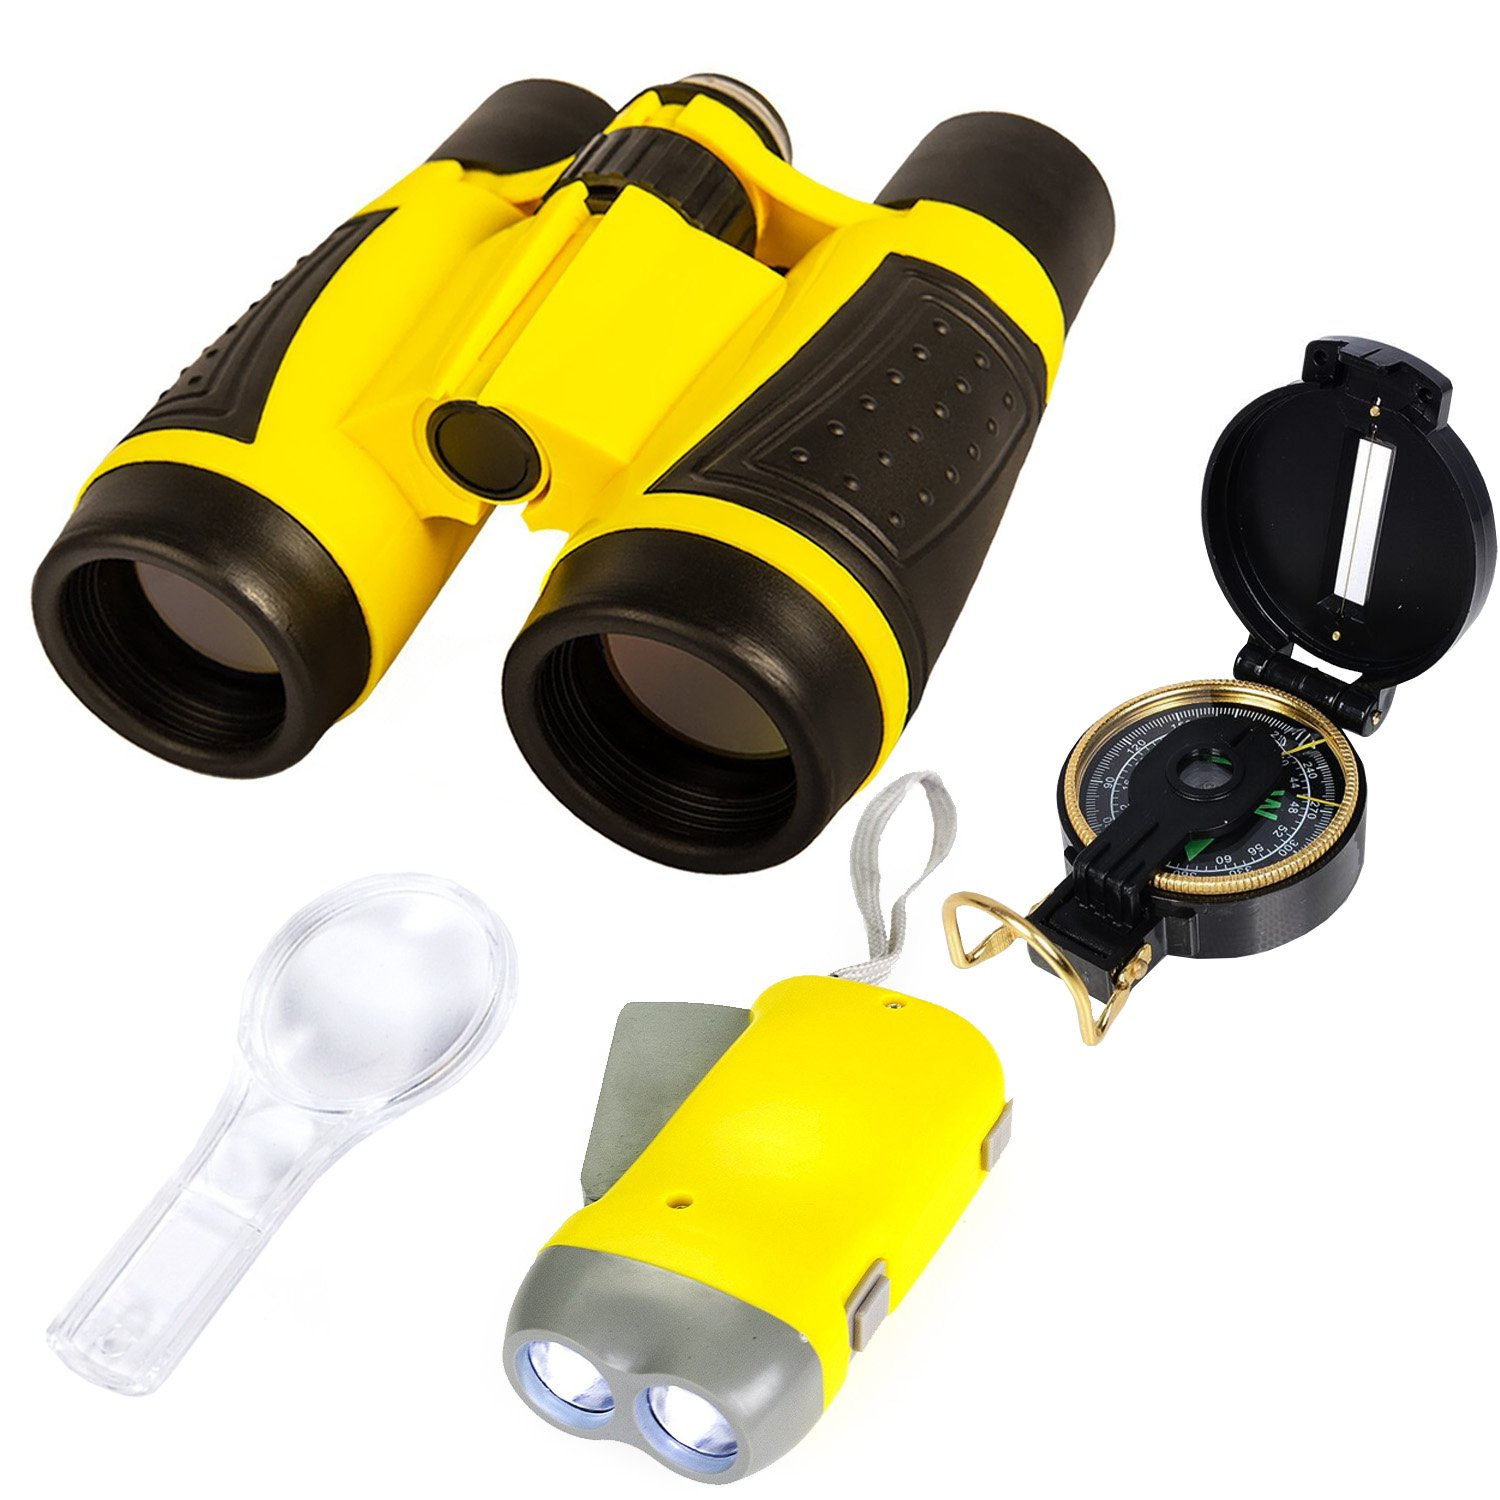 Boxiki Kids Nature Exploration Adventure Toys | 5 PC Outdoor Adventure Set | Compass, Magnifying Glass, Flashlight, Backpack & Binoculars For Kids | Educational Outdoor Toys for Boys & Girls